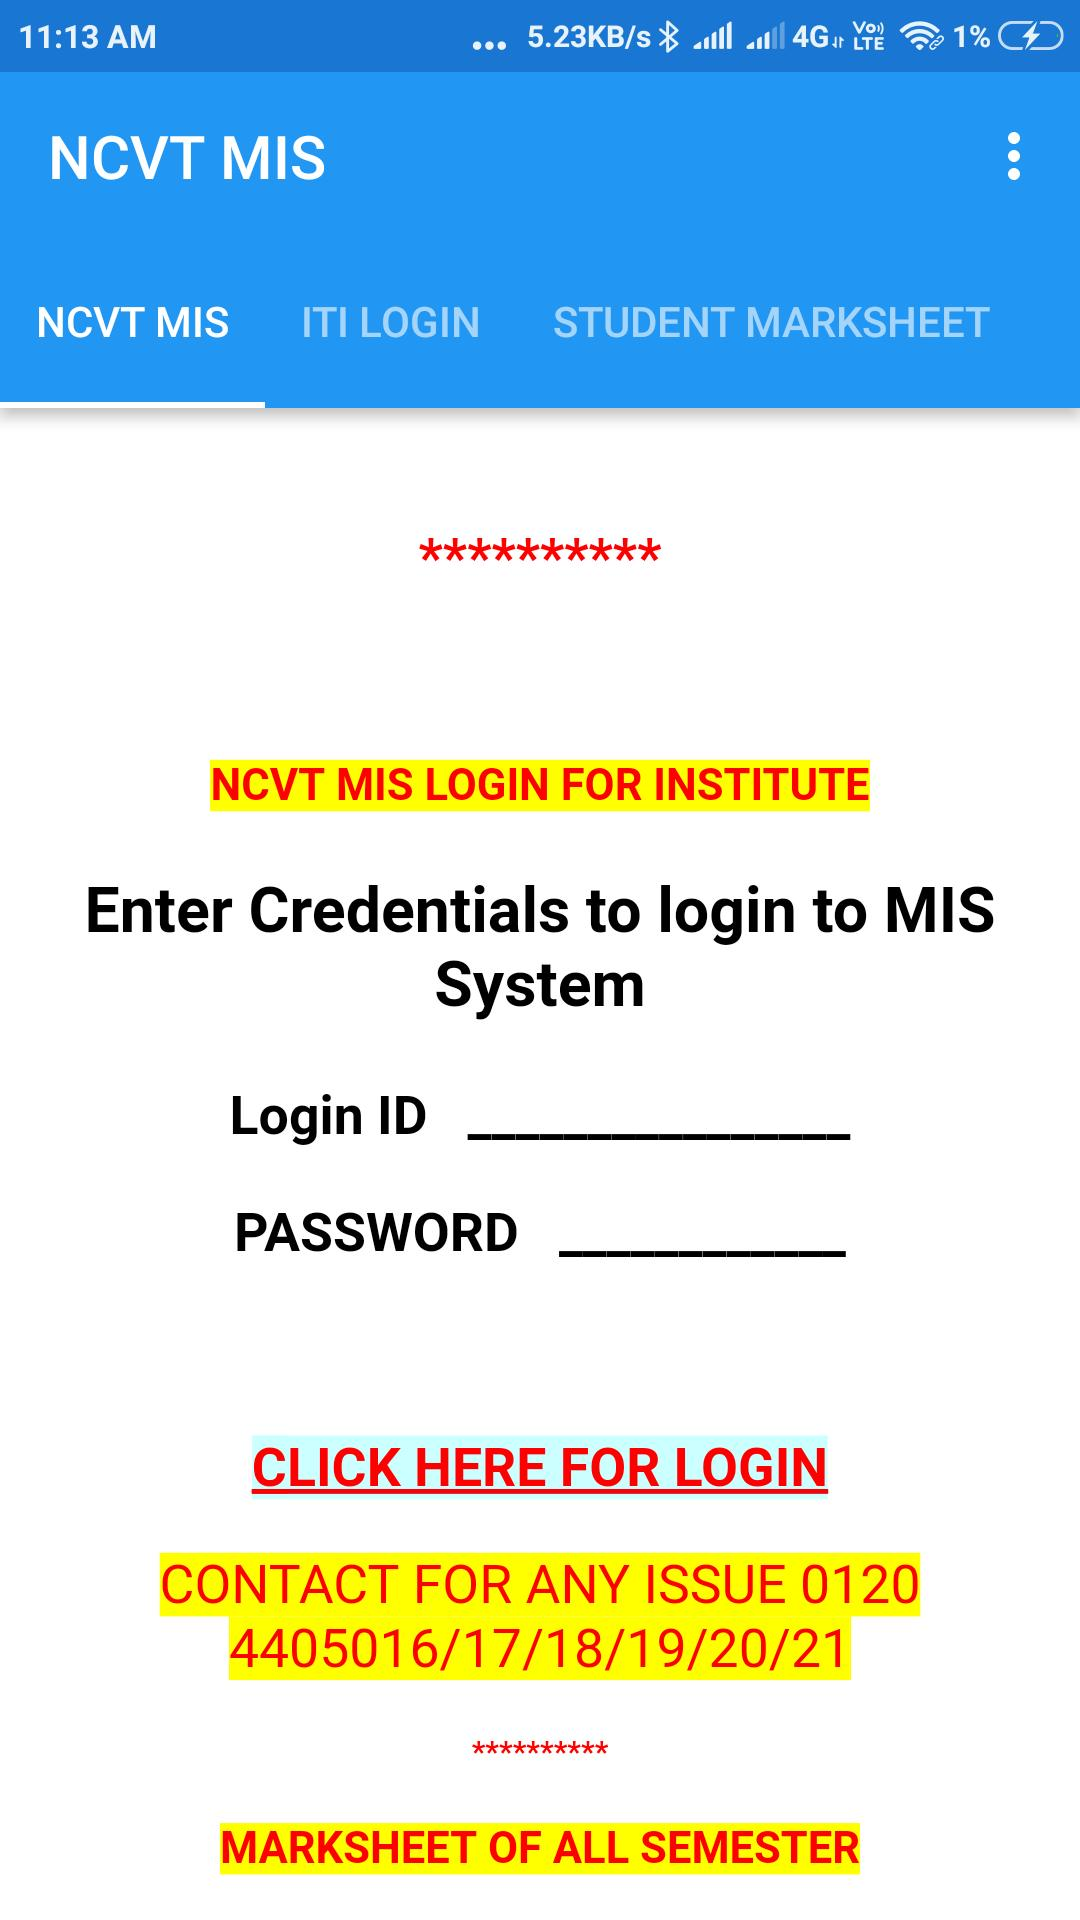 NCVT MIS for Android - APK Download